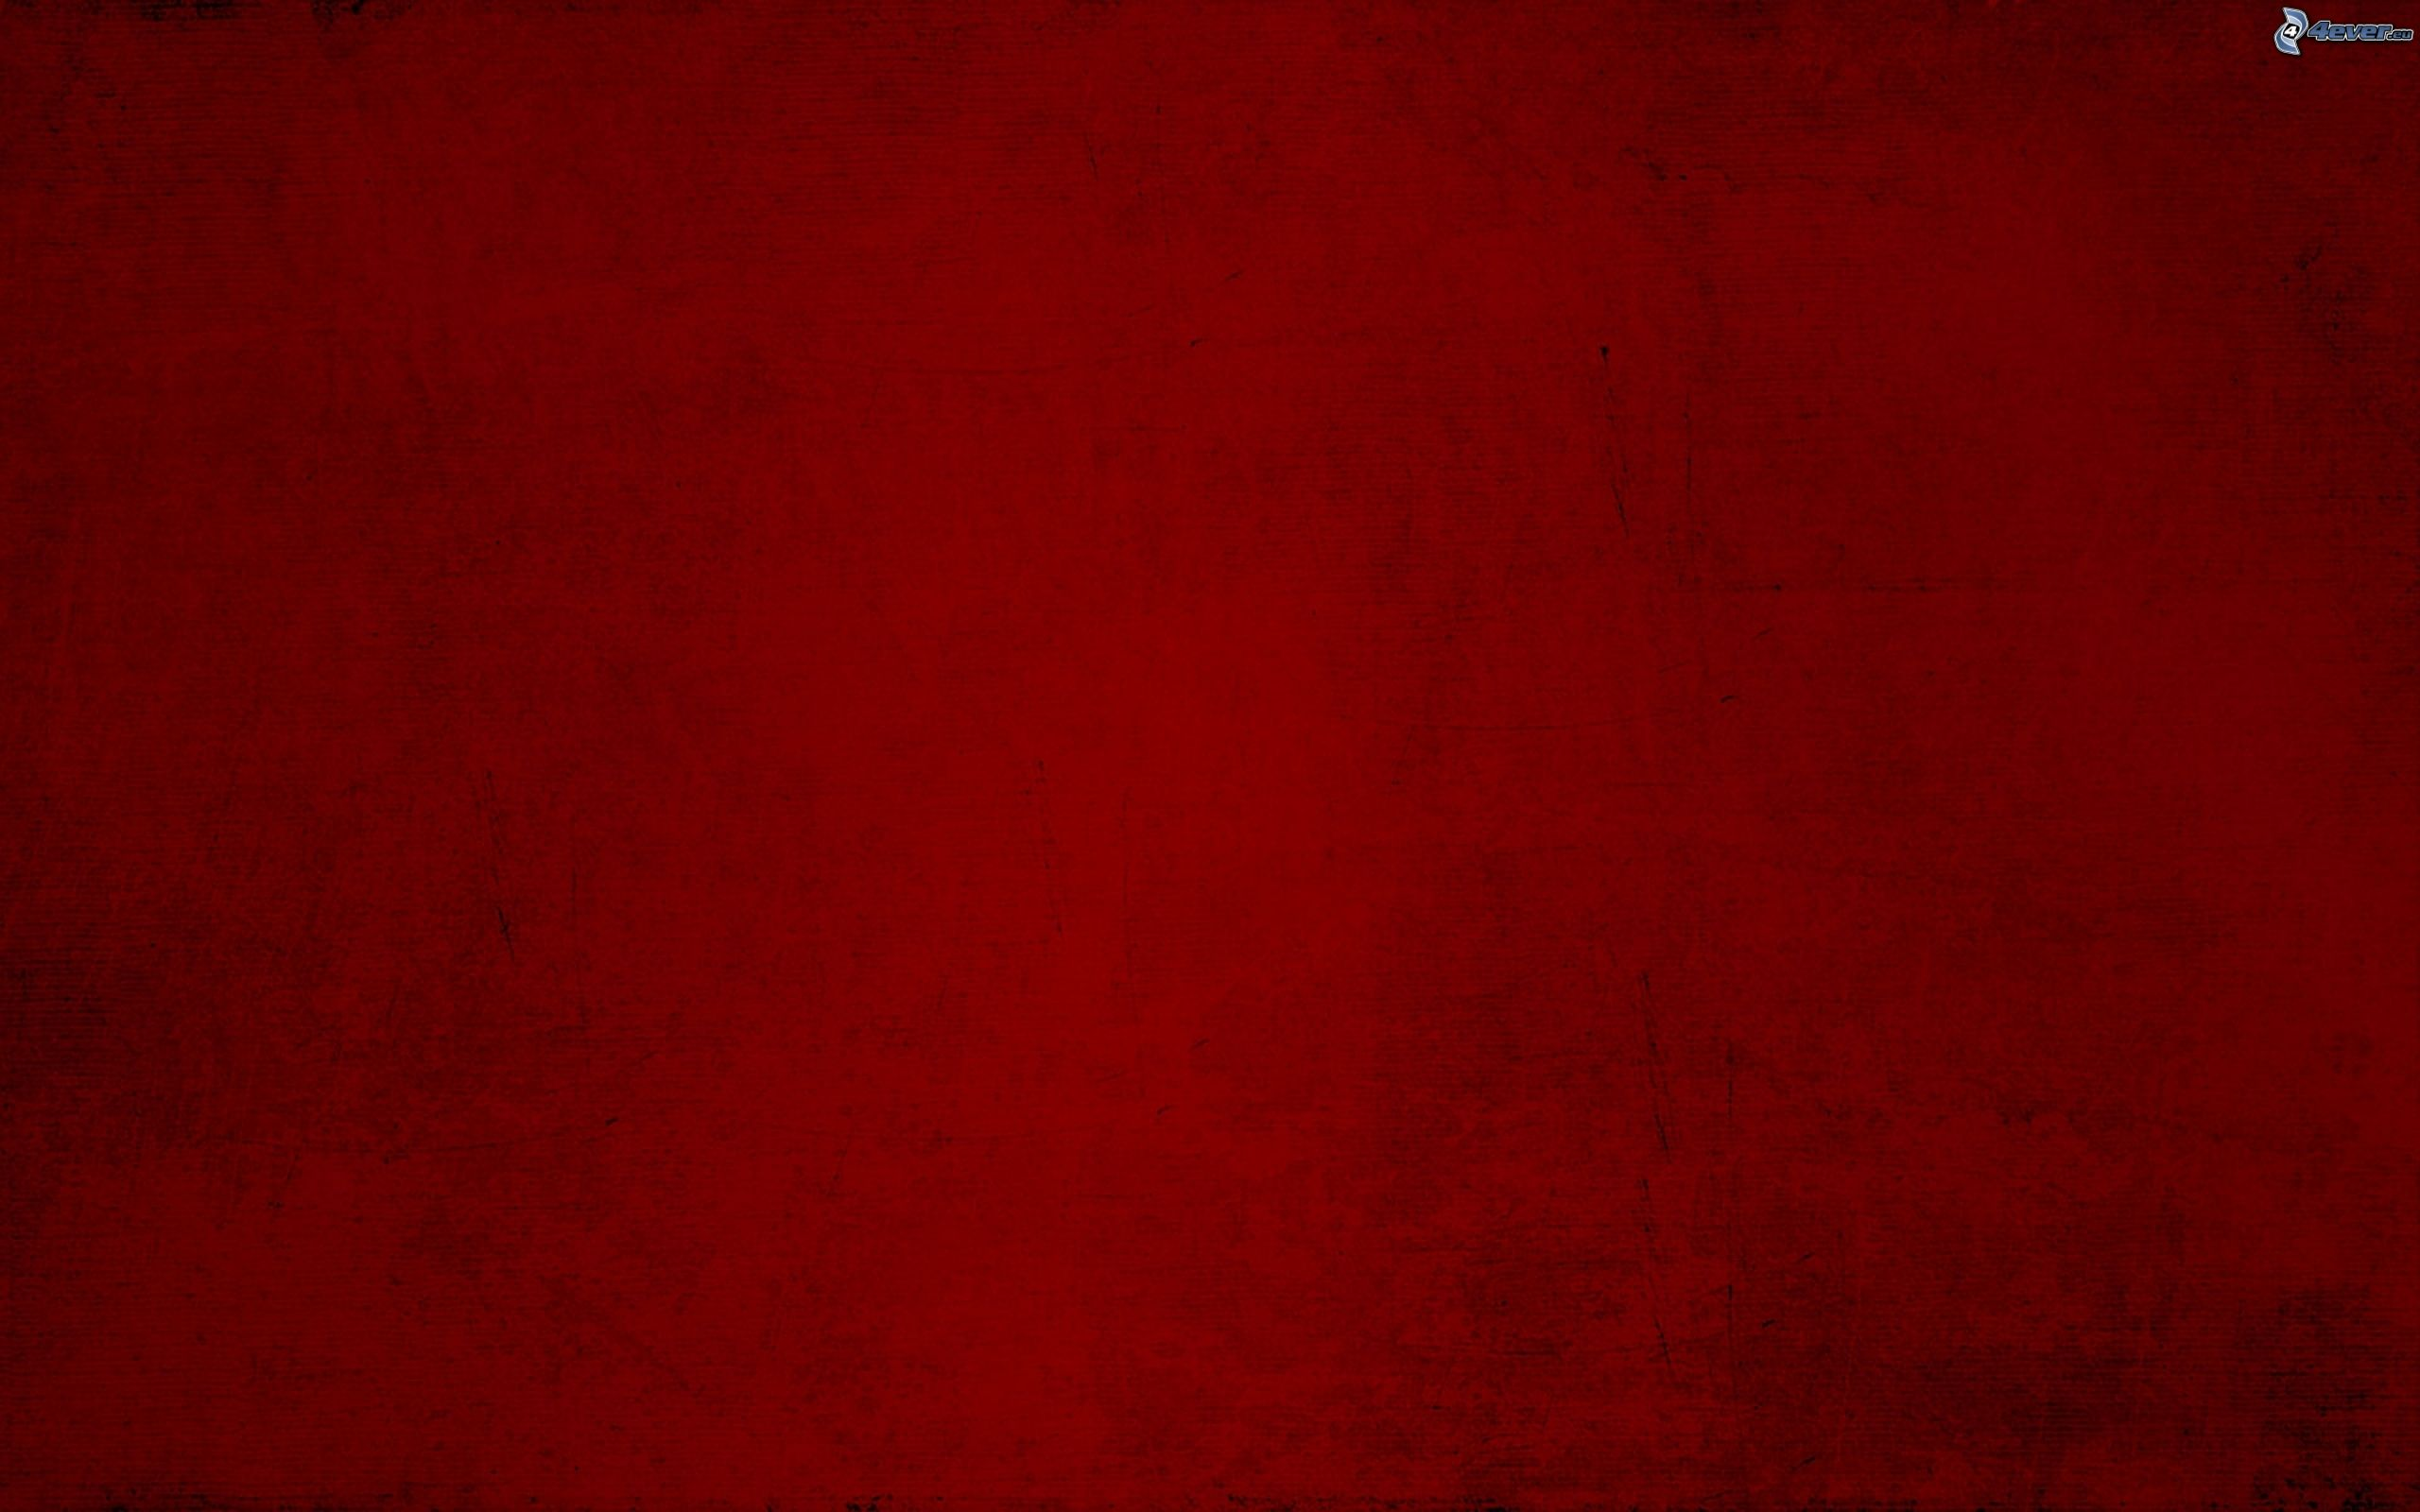 Le fond rouge for Fond full hd